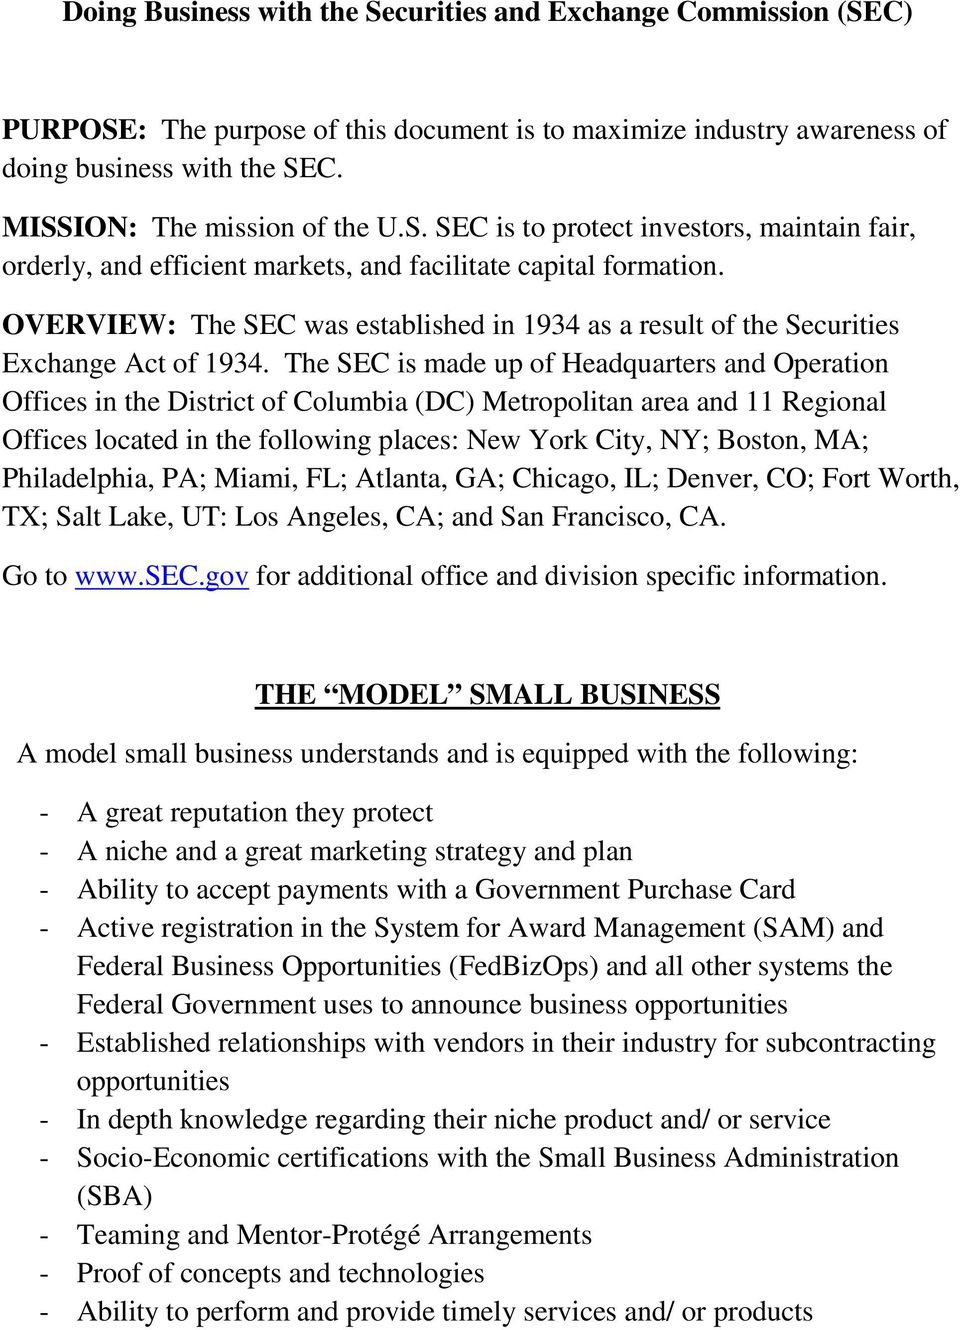 OVERVIEW: The SEC was established in 1934 as a result of the Securities Exchange Act of 1934.